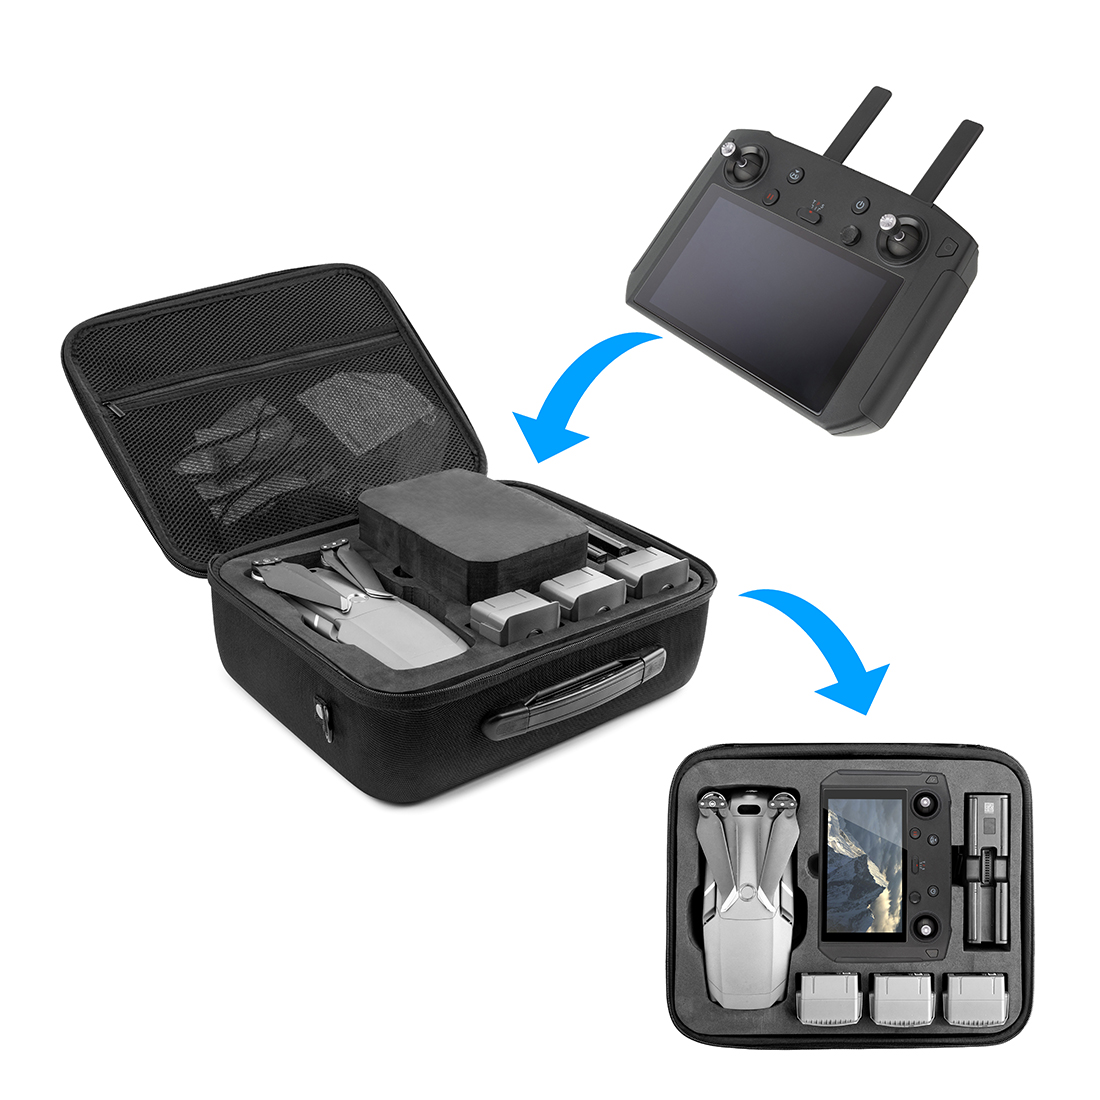 For Mavic 2 Pro /Zoom Drone Case Waterproof Battery Filter Charger Storage Bag Strap Handbag For DJI Mavic 2 Smart Controller